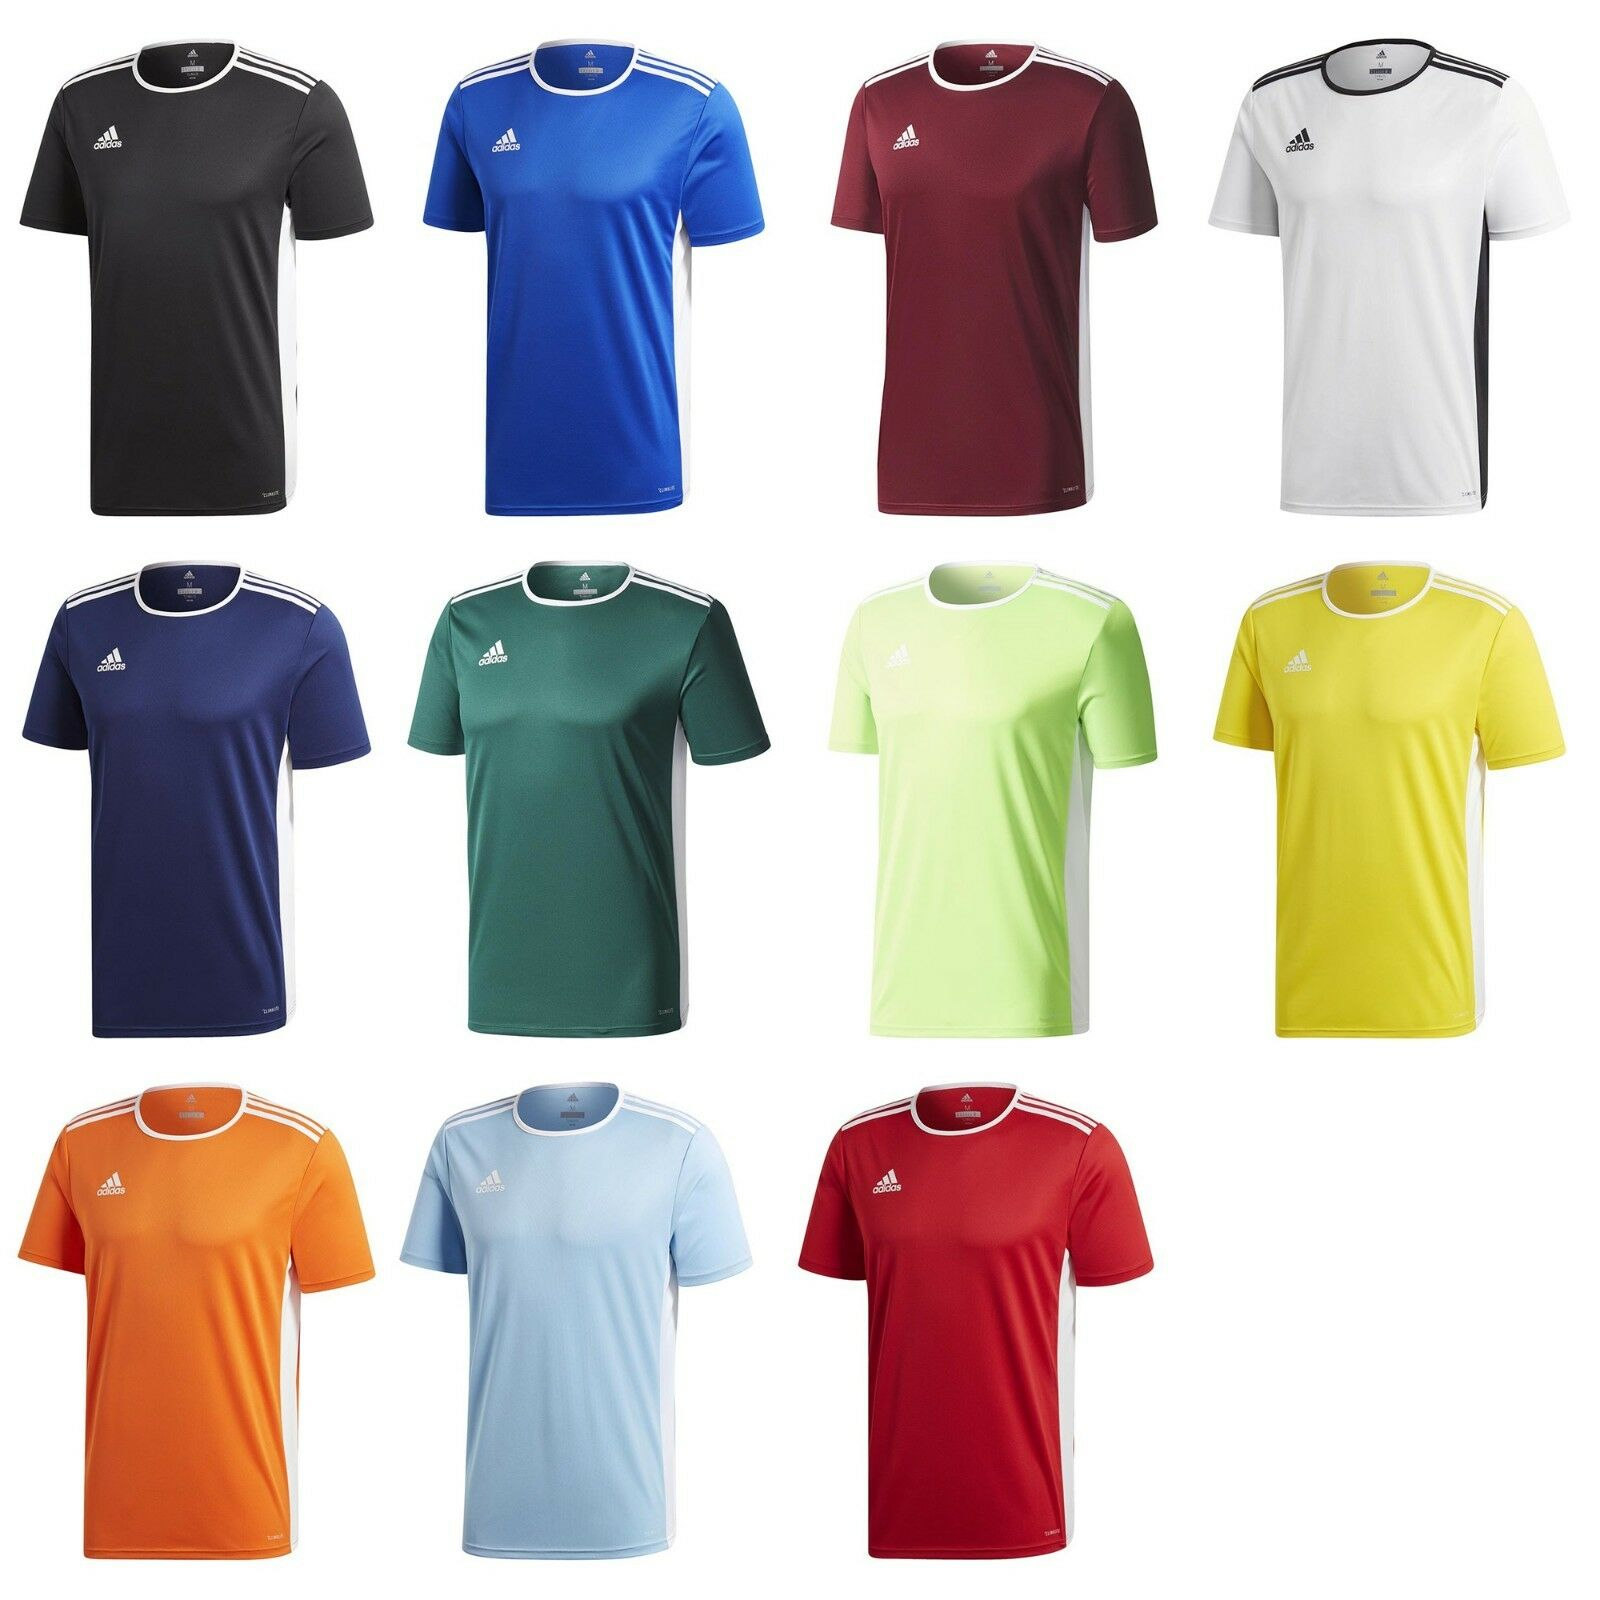 ddc96475 Boys Adidas T Shirt Entrada 18 Climalite Short Sleeve Top Football Youth  Junior